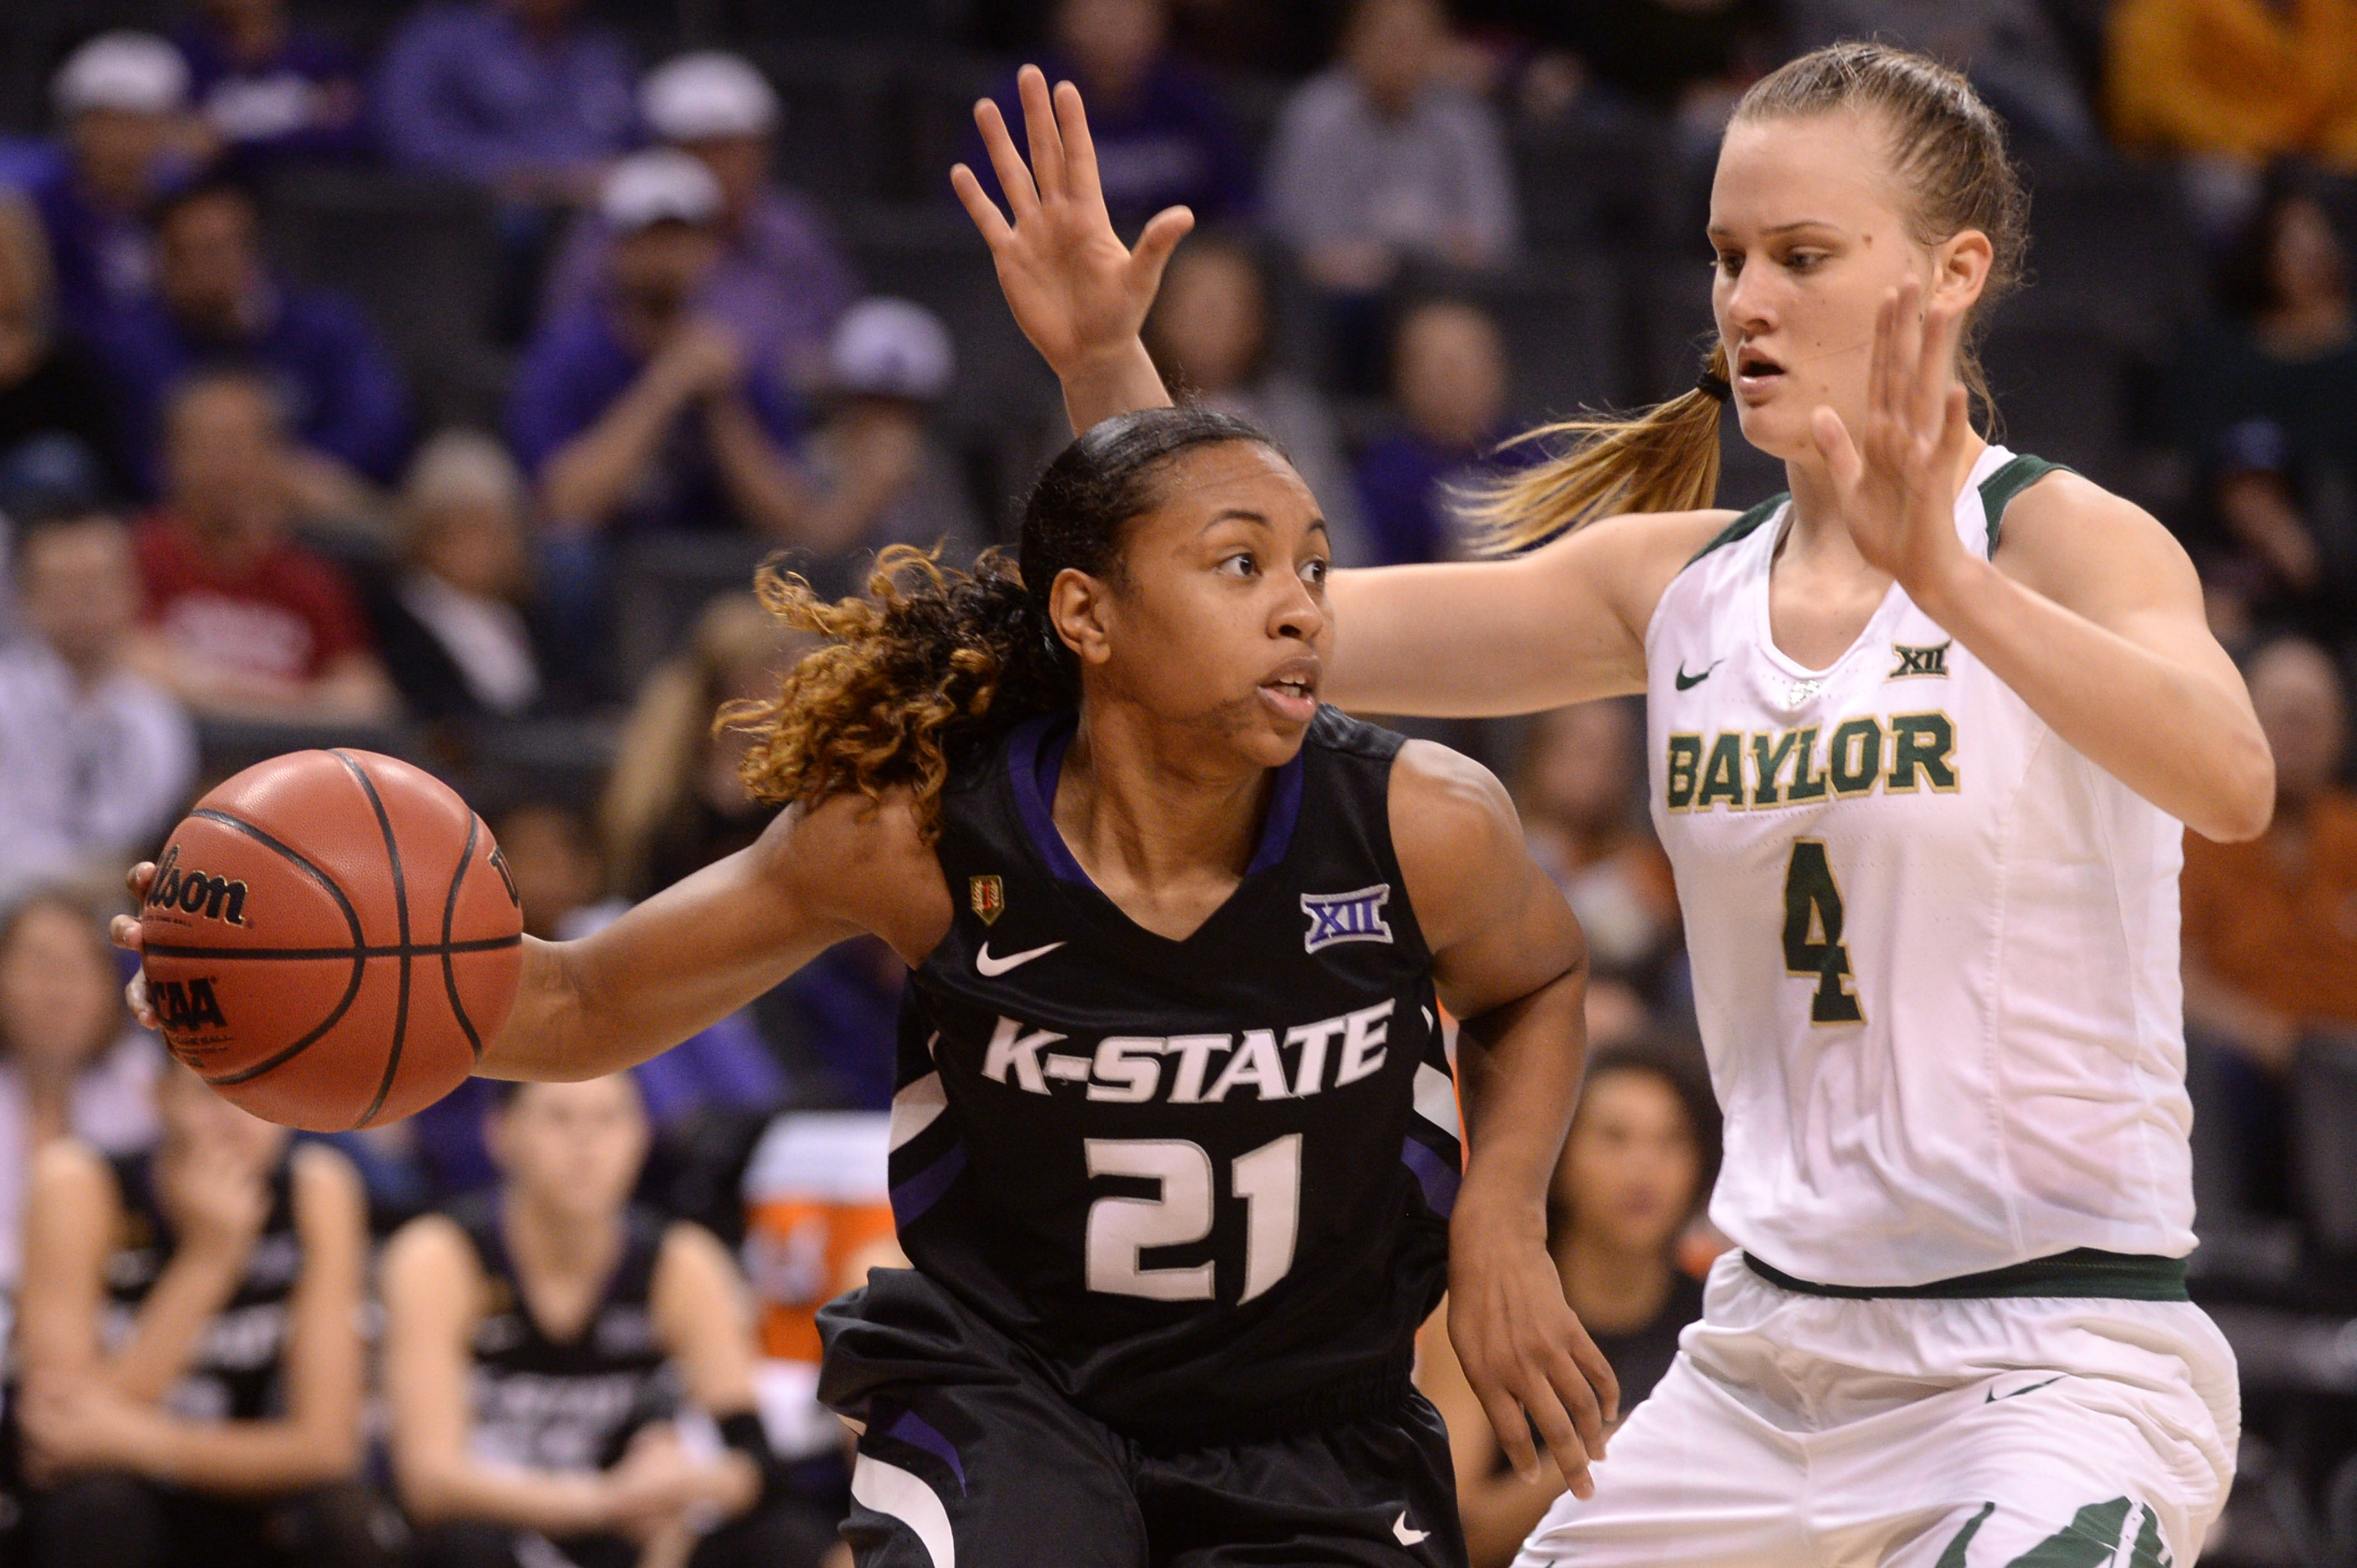 Karlya Middlebrook has come on strong in the second half of the season. Can she help lead the Cats past Drake?